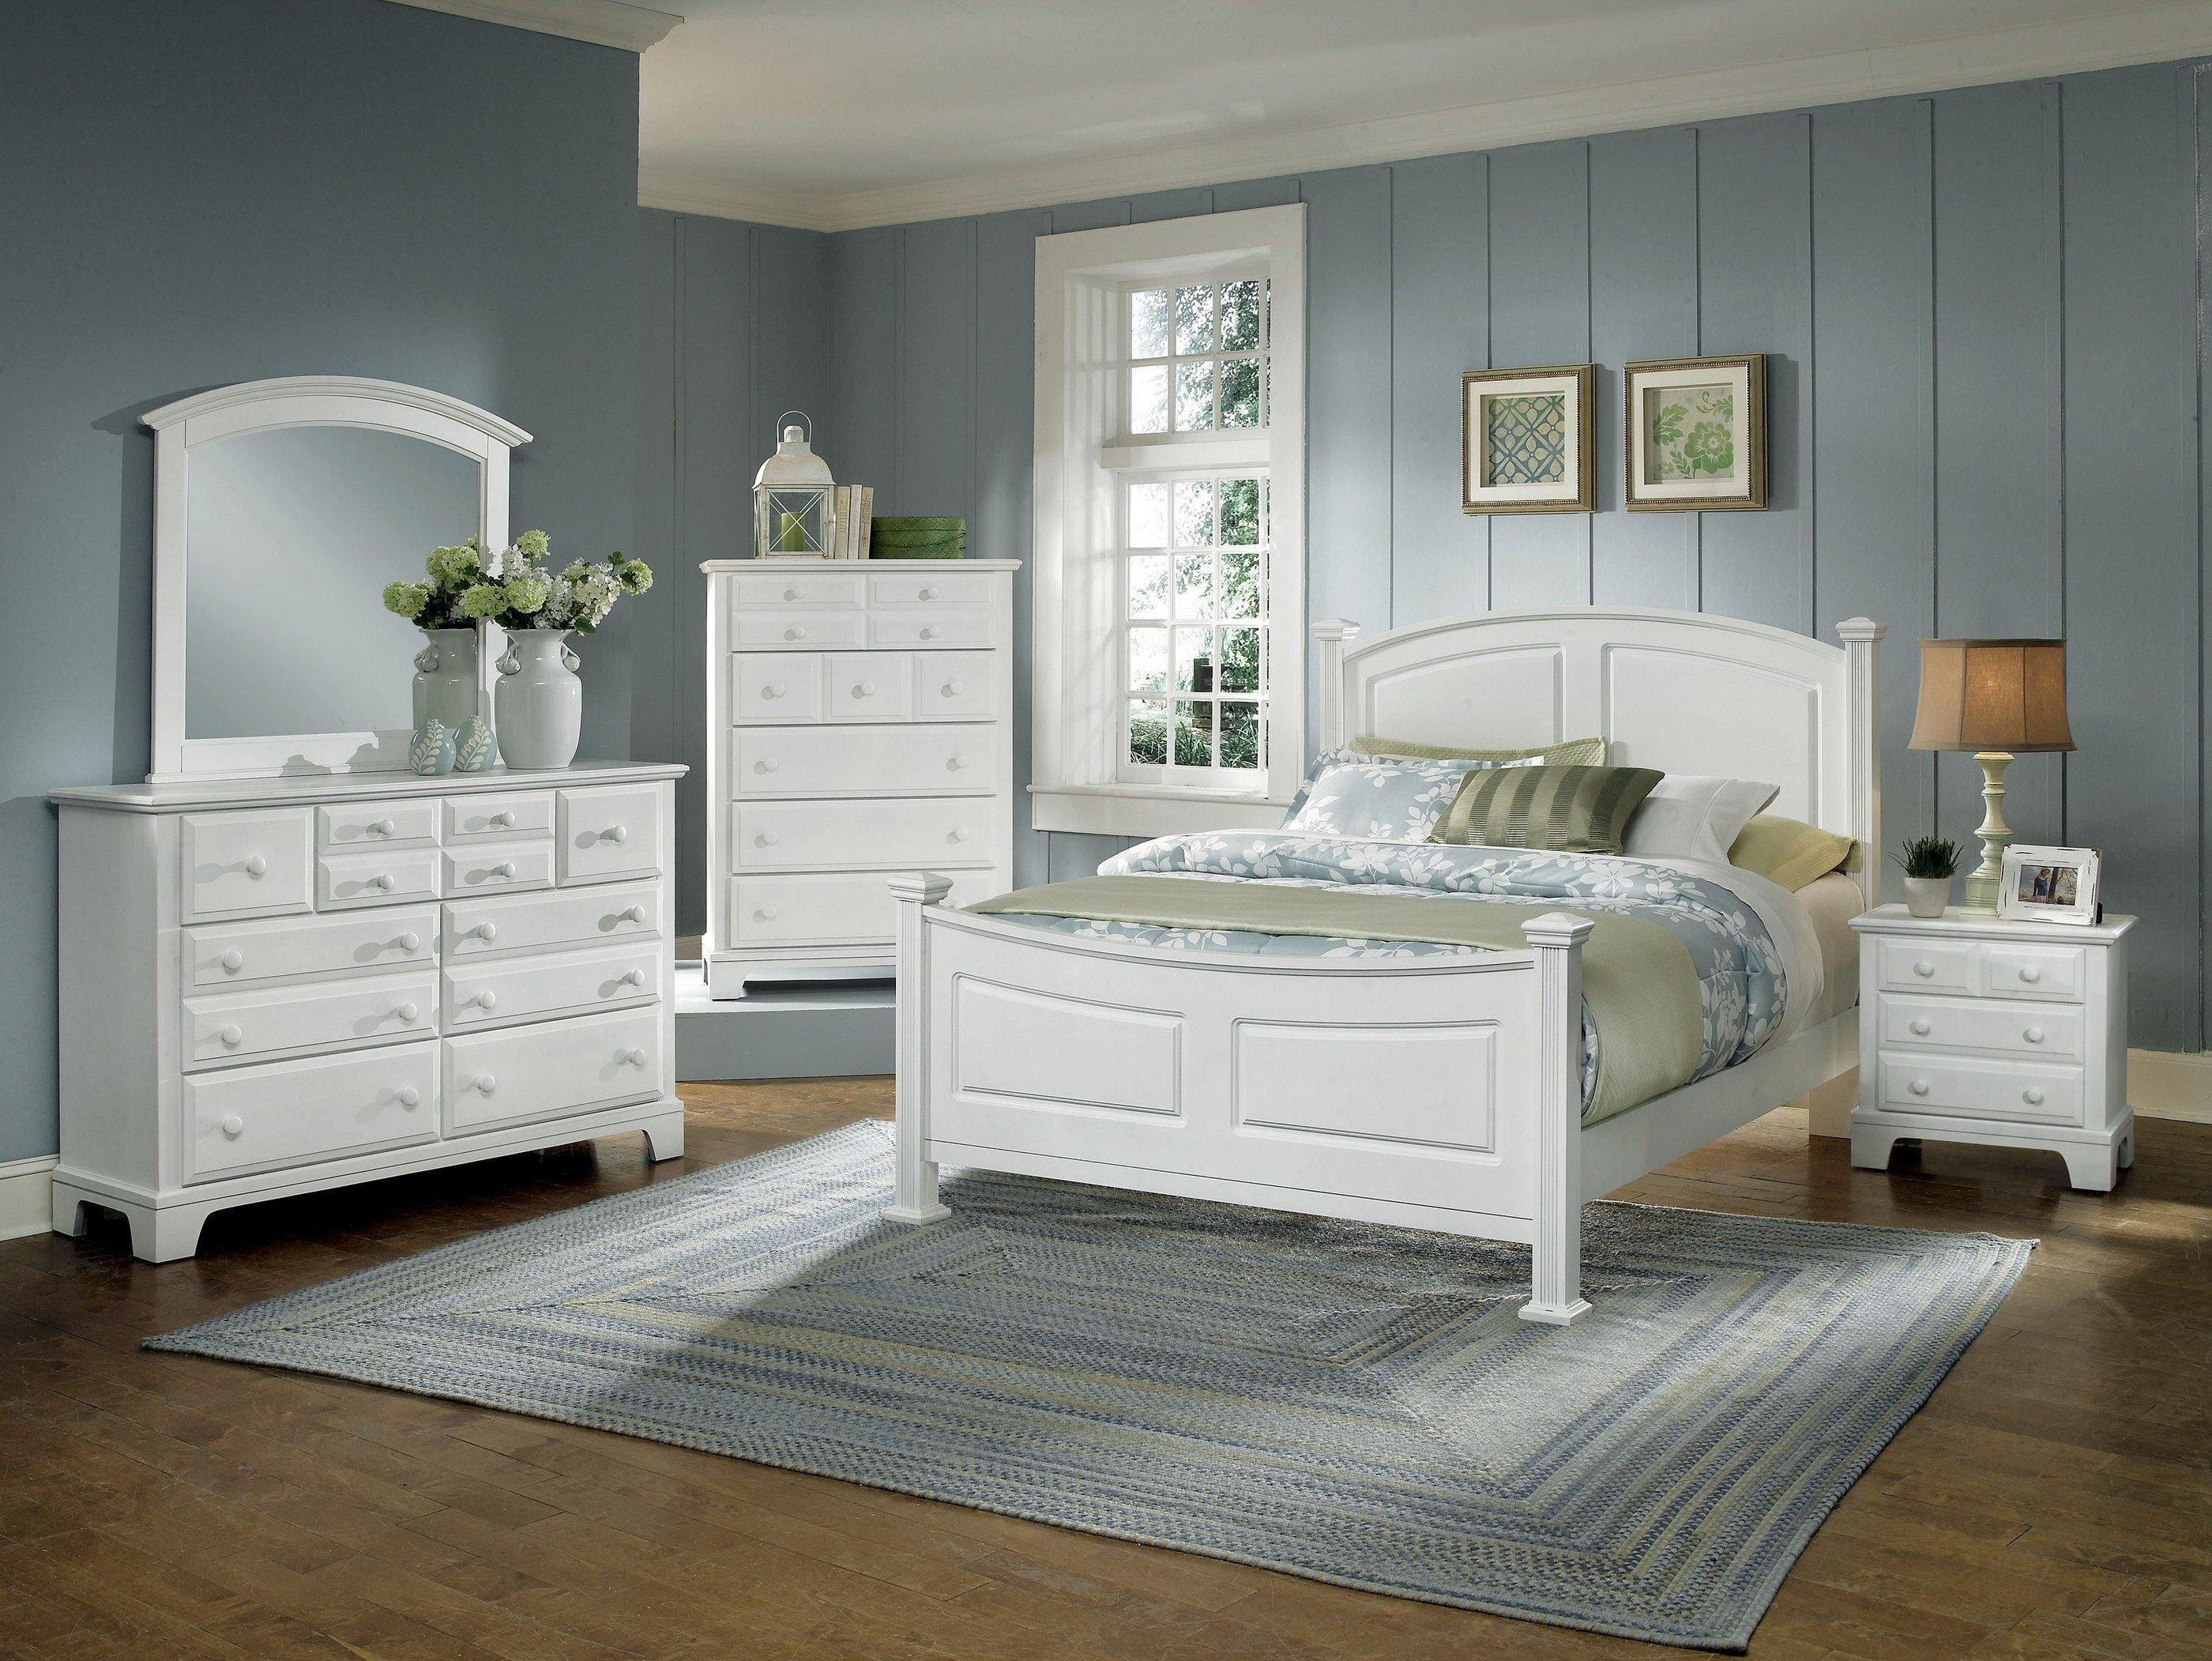 Vaughan Bassett Hamilton/Franklin King Bedroom Group - Item Number: BB6 K Bedroom Group 1